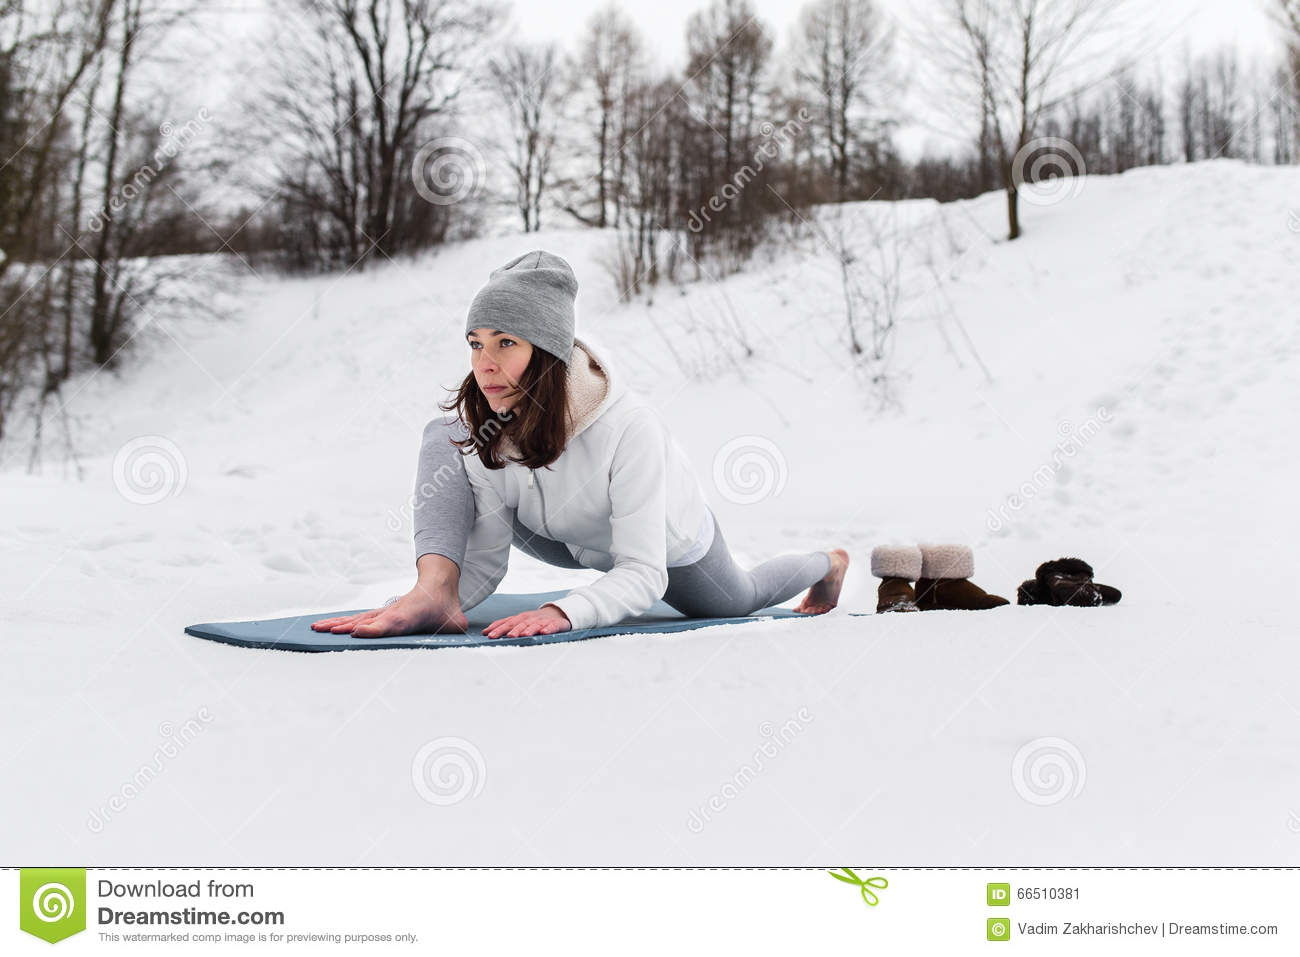 https://thumbs.dreamstime.com/z/winter-yoga-session-beautiful-place-young-athletic-woman-doing-woods-girl-engaged-fitness-park-66510381.jpg